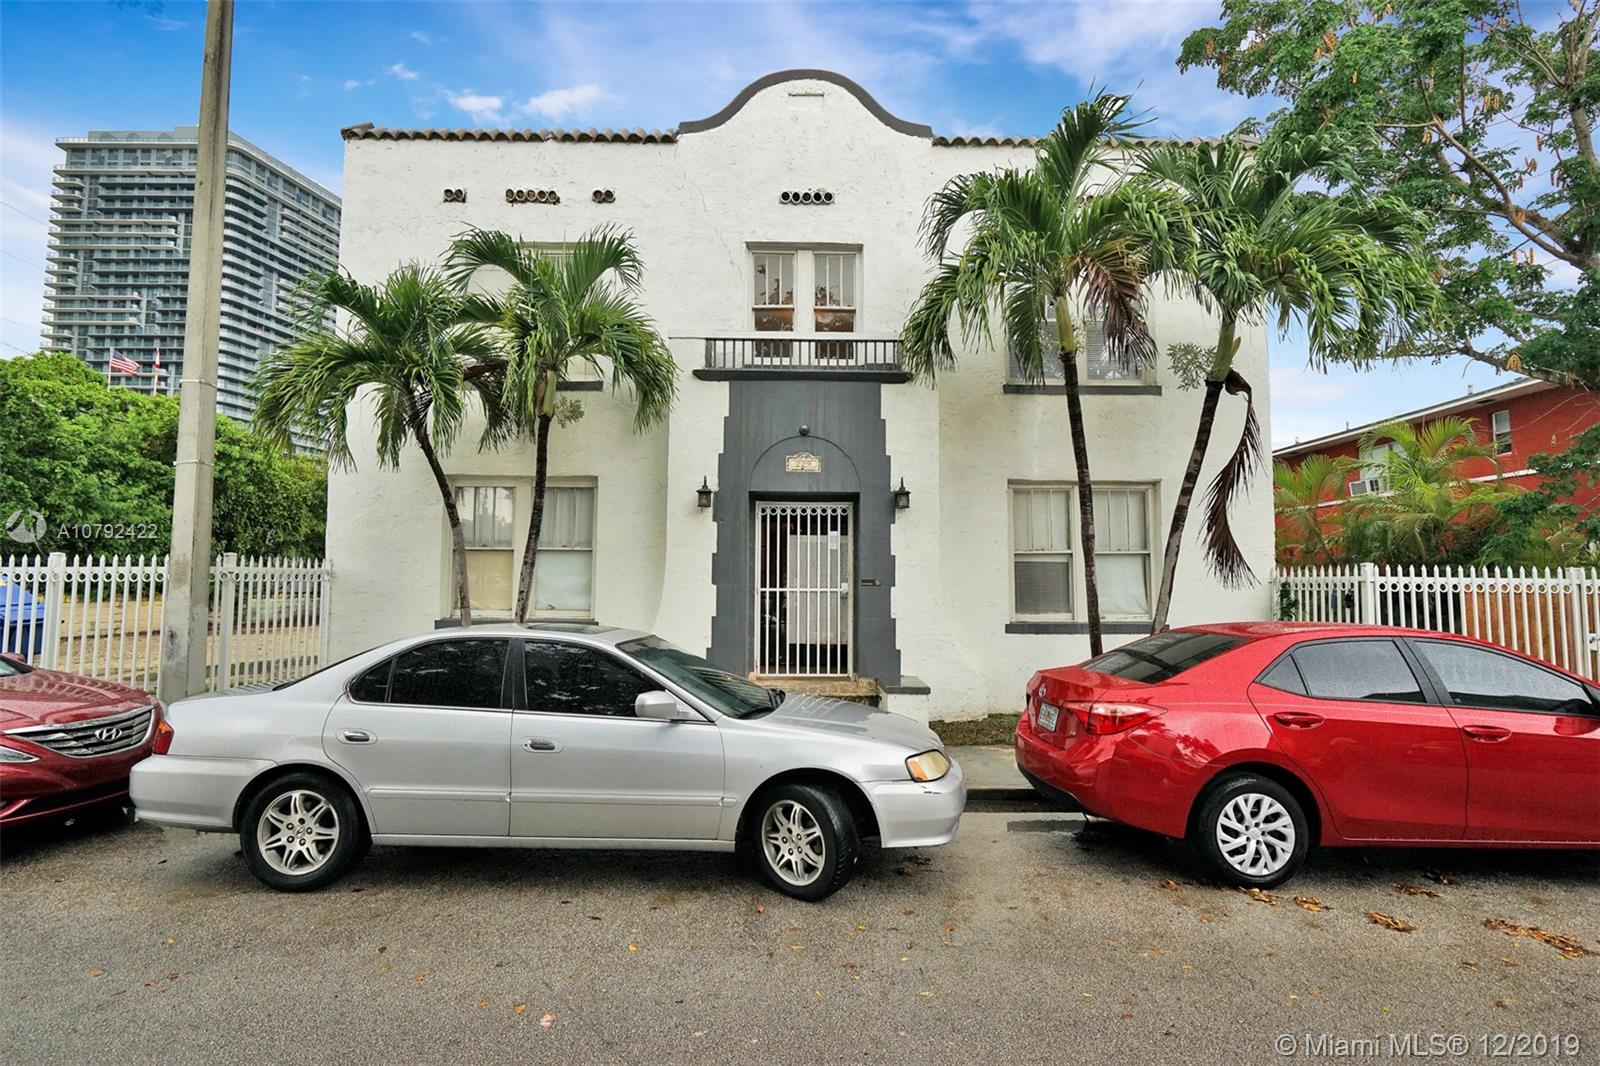 229 NE 32 STREET #3 For Sale A10792422, FL